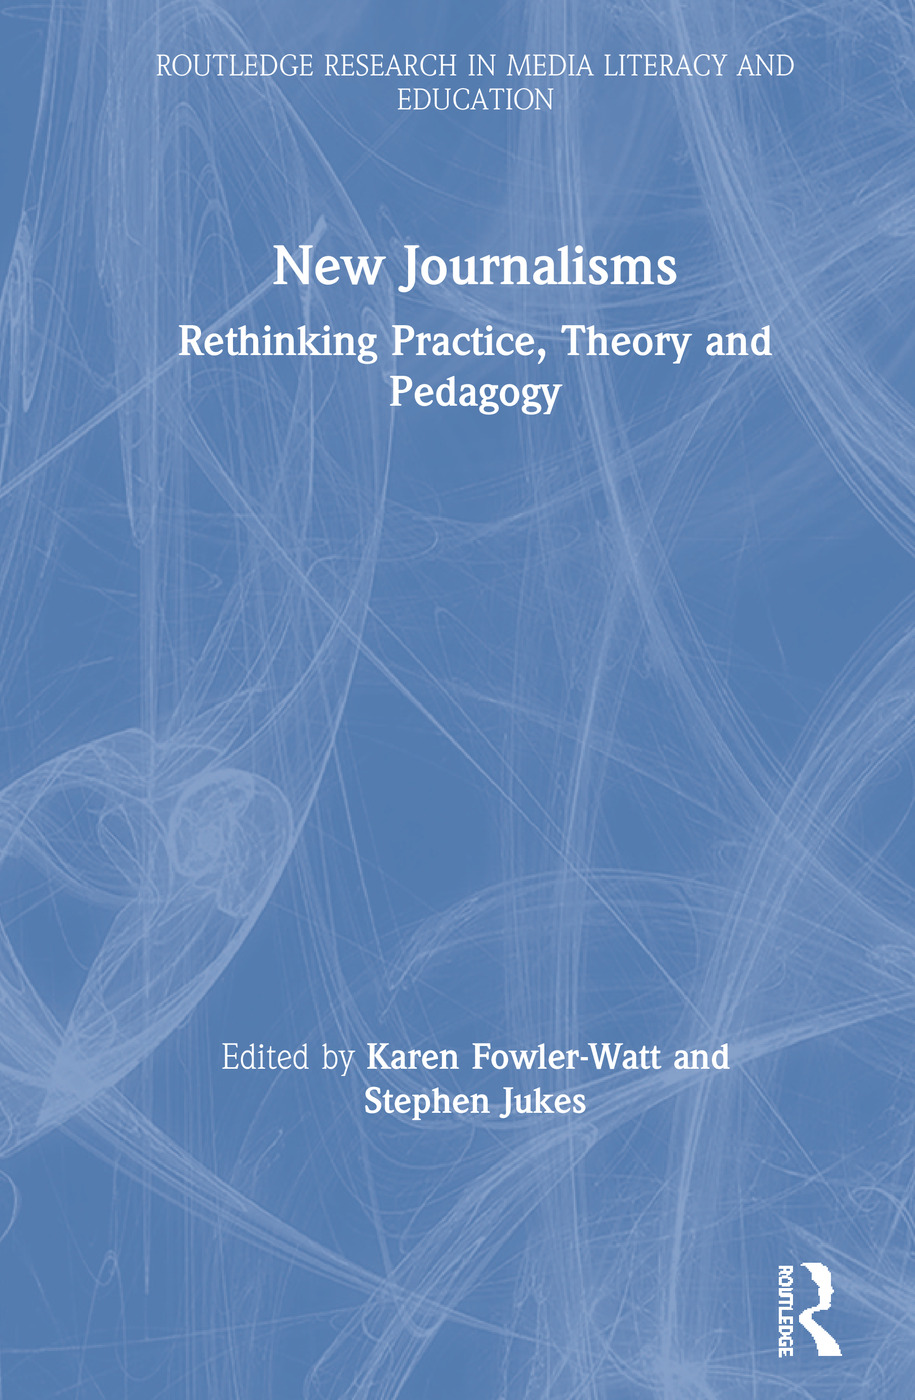 New Journalisms: Rethinking Practice, Theory and Pedagogy book cover